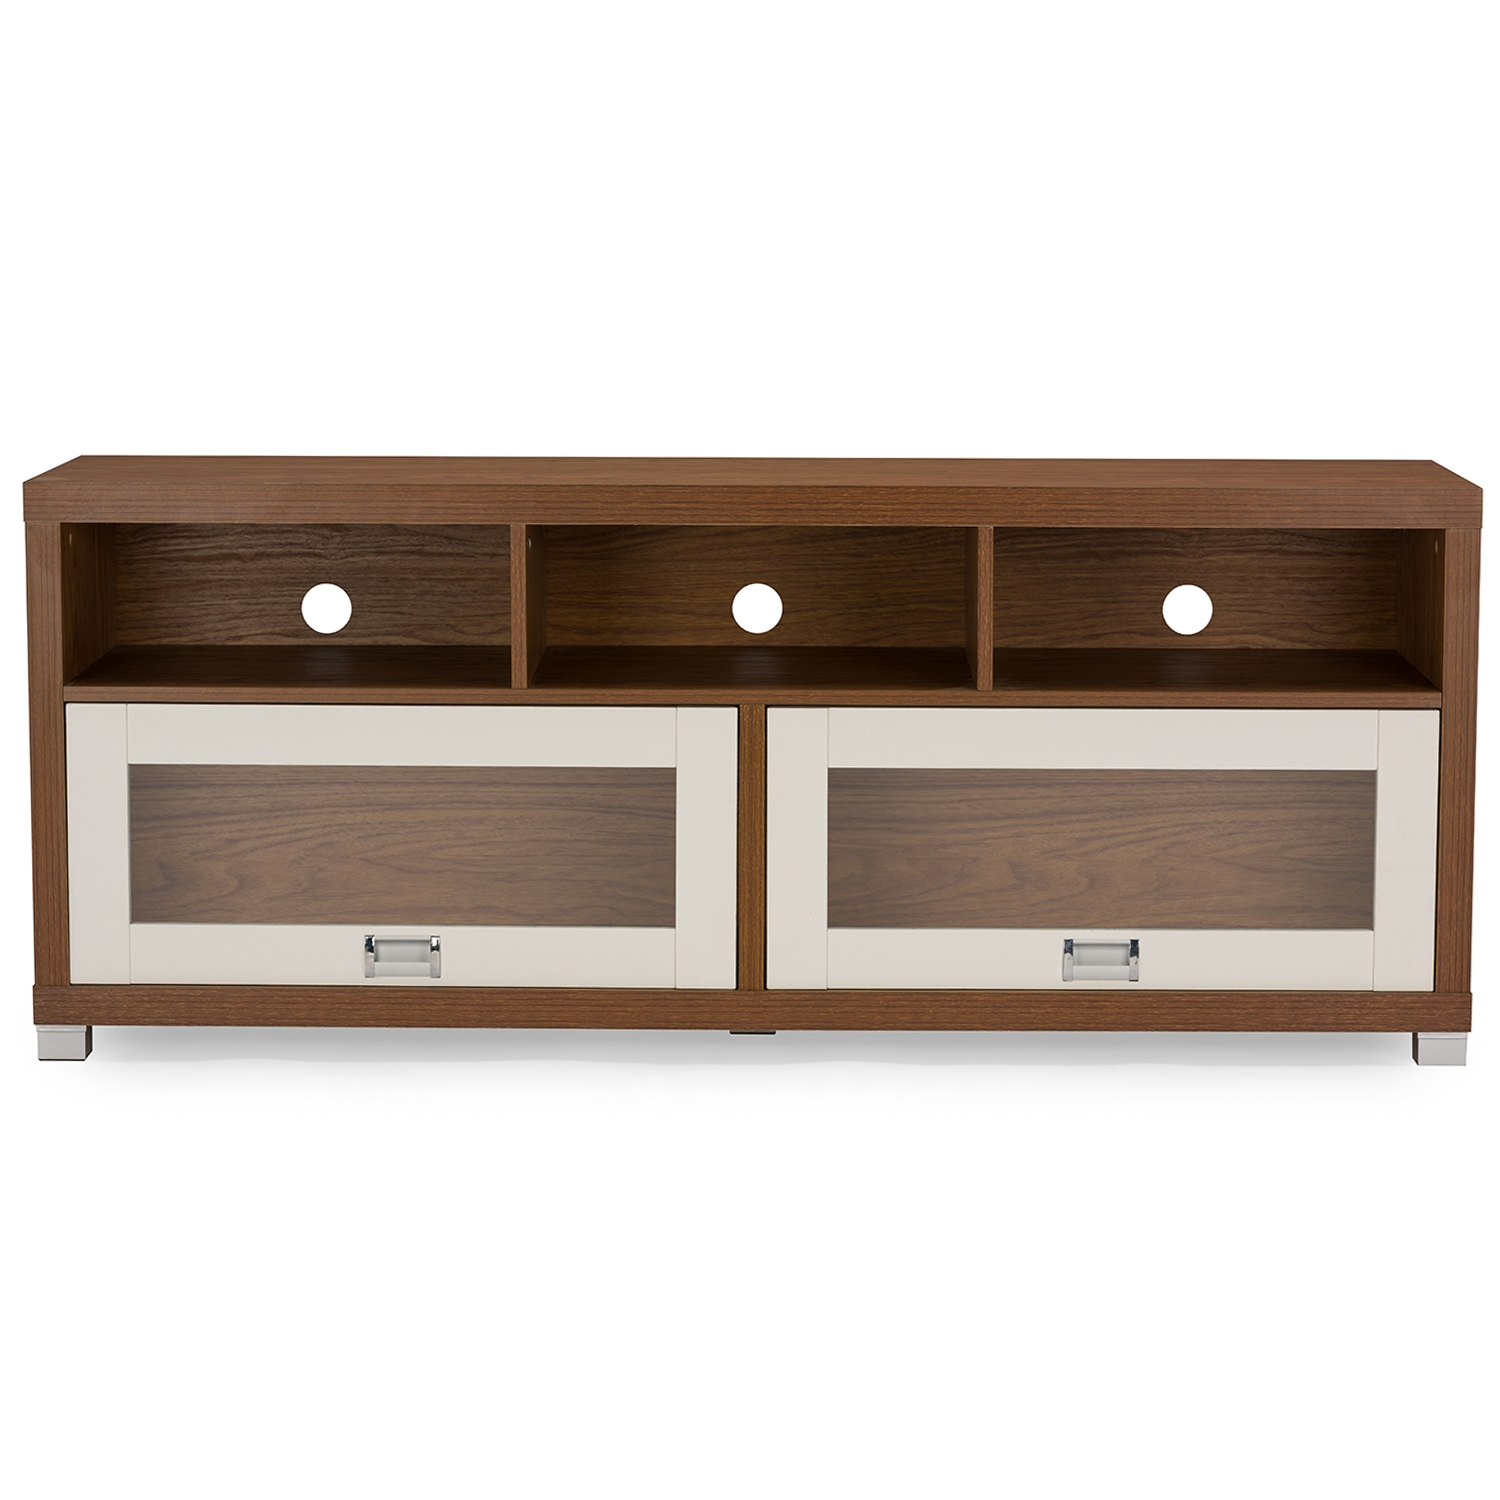 Baxton Studio Swindon Modern Two Tone Walnut And White TV Stand With Glass  Doors